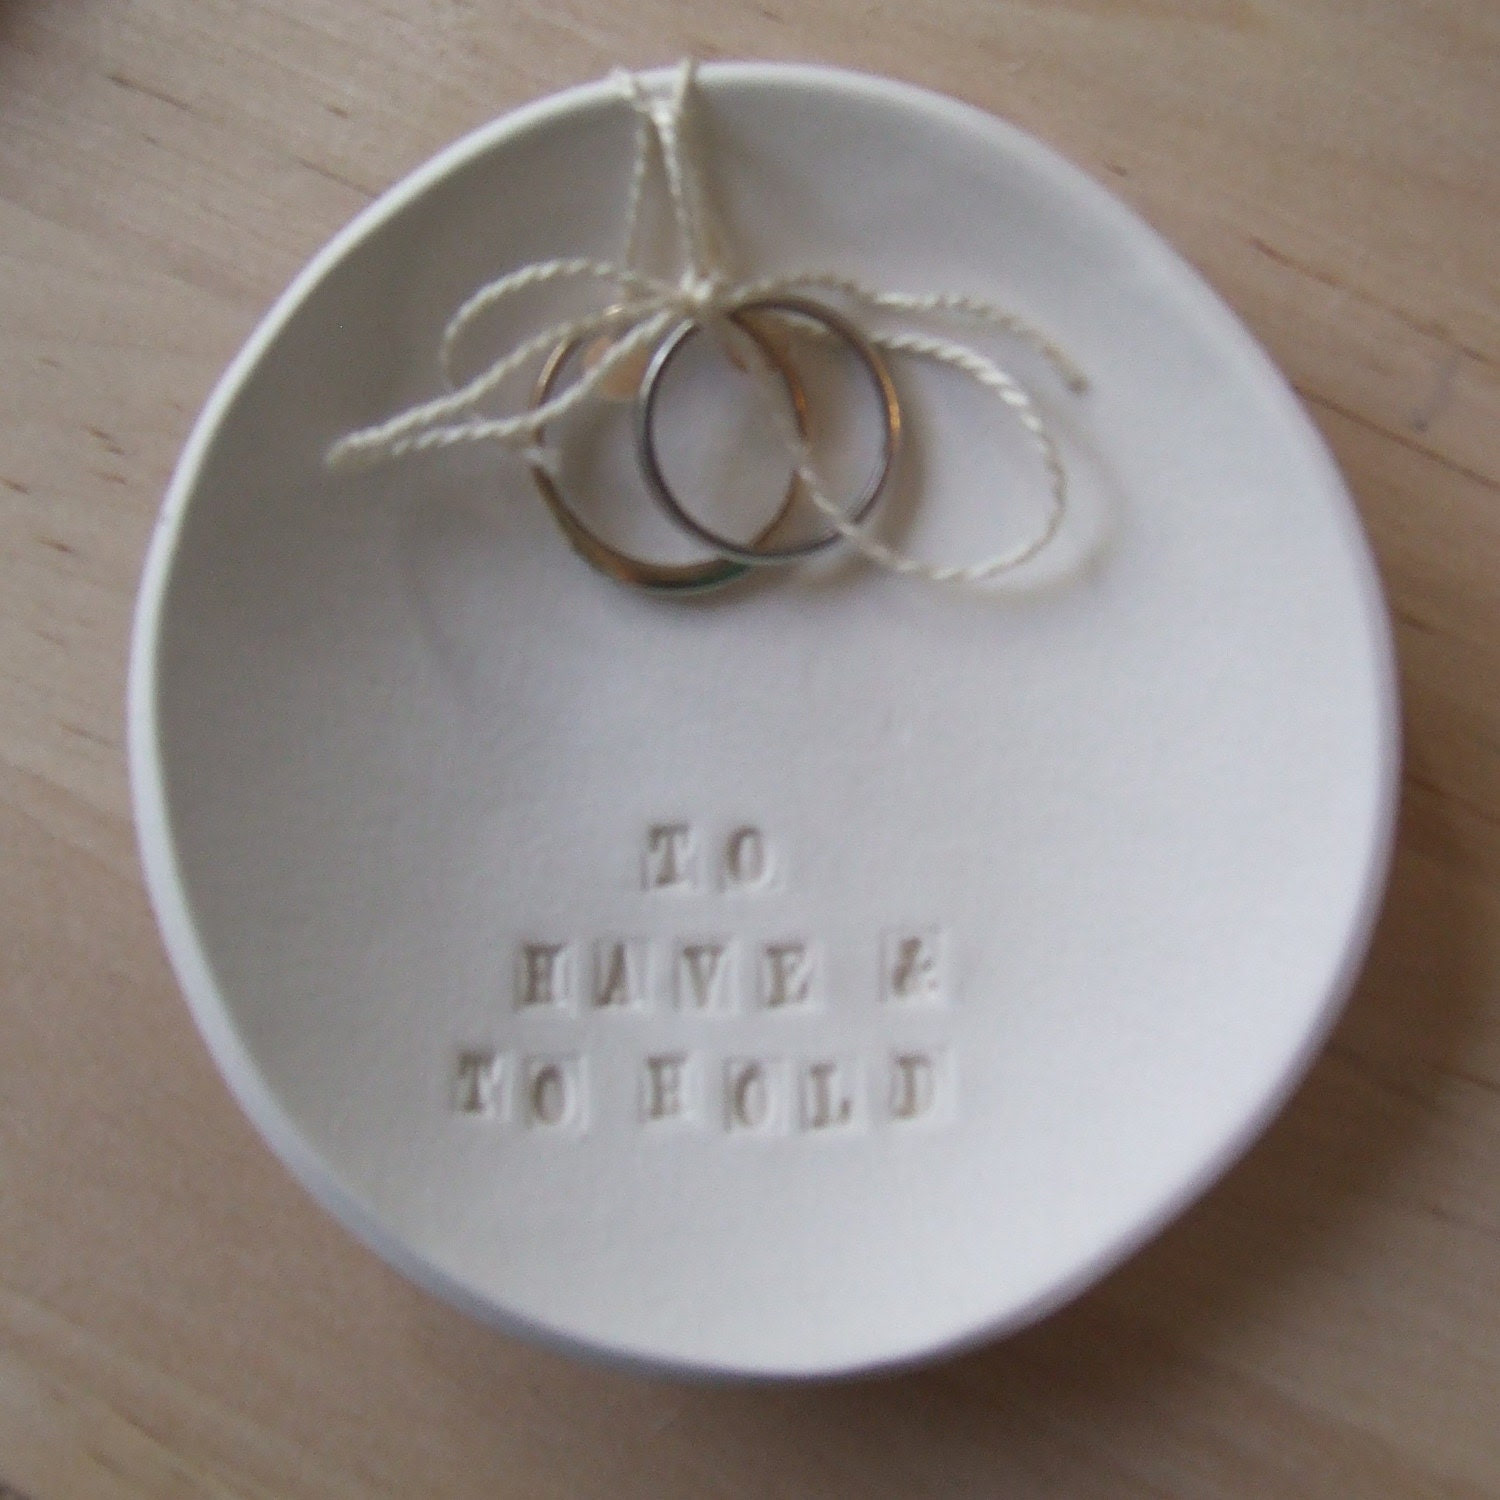 TO HAVE AND TO HOLD tiny text bowl for rings